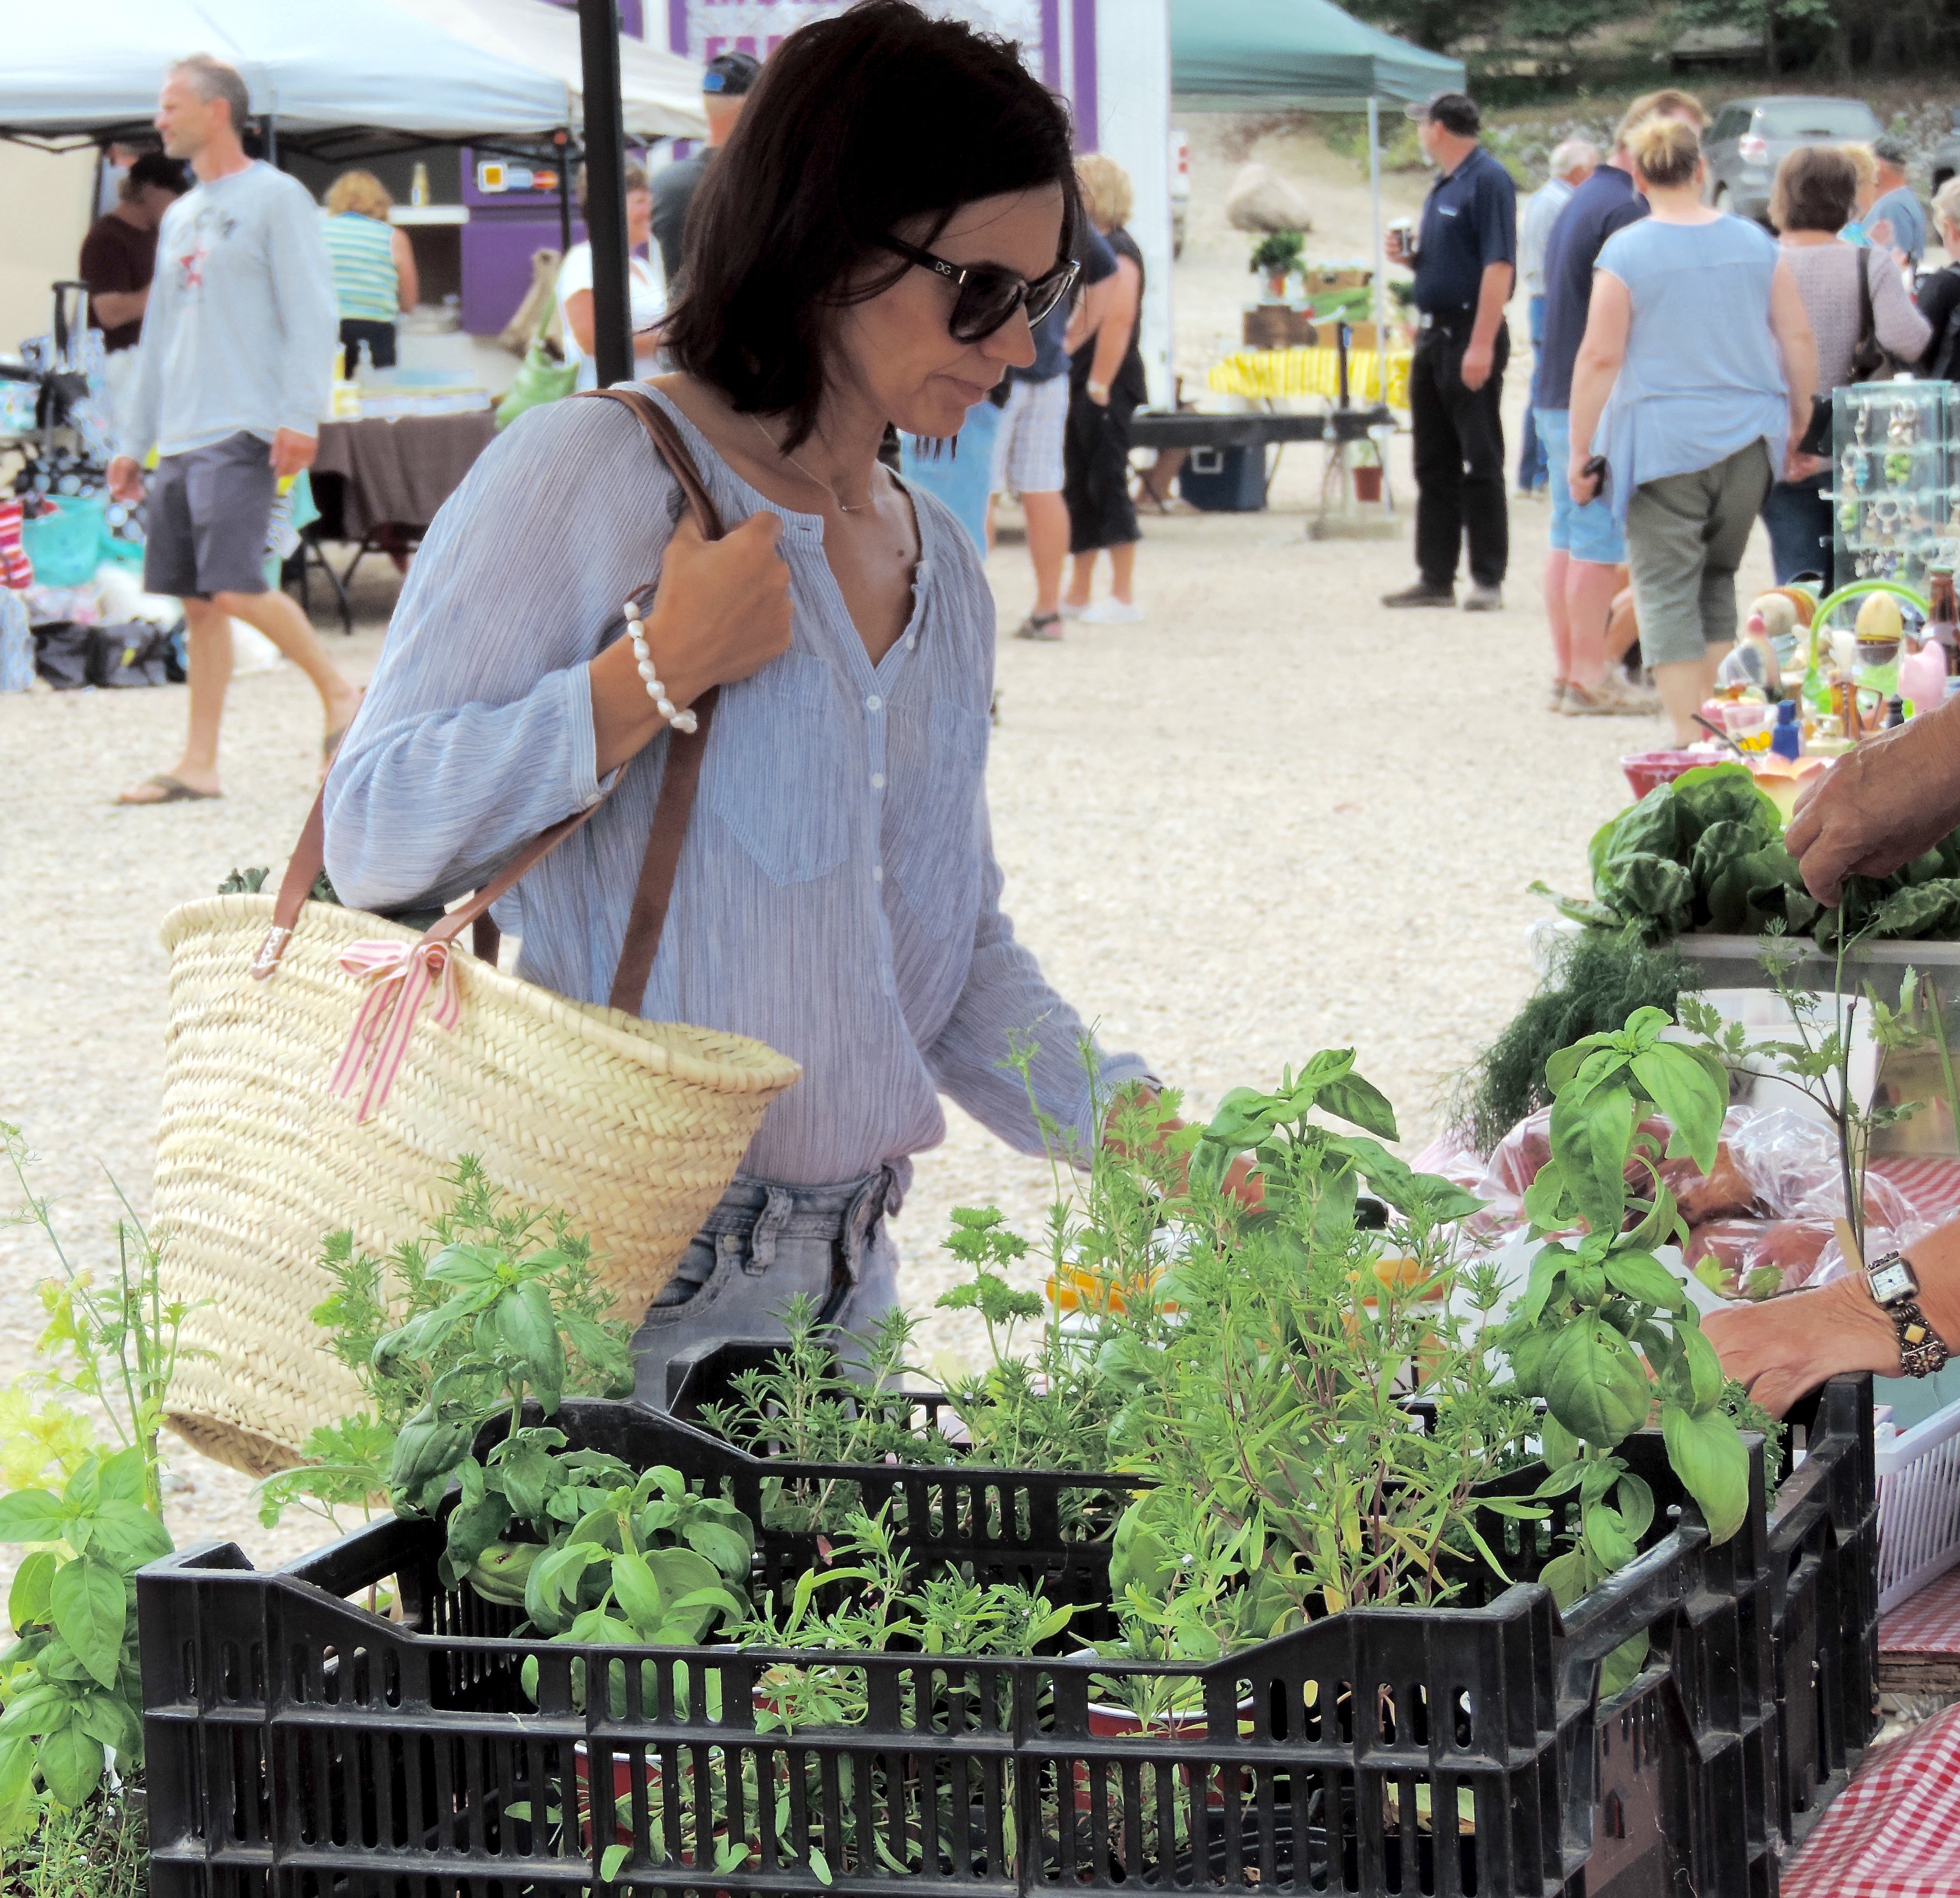 woman shopping at outdoor market